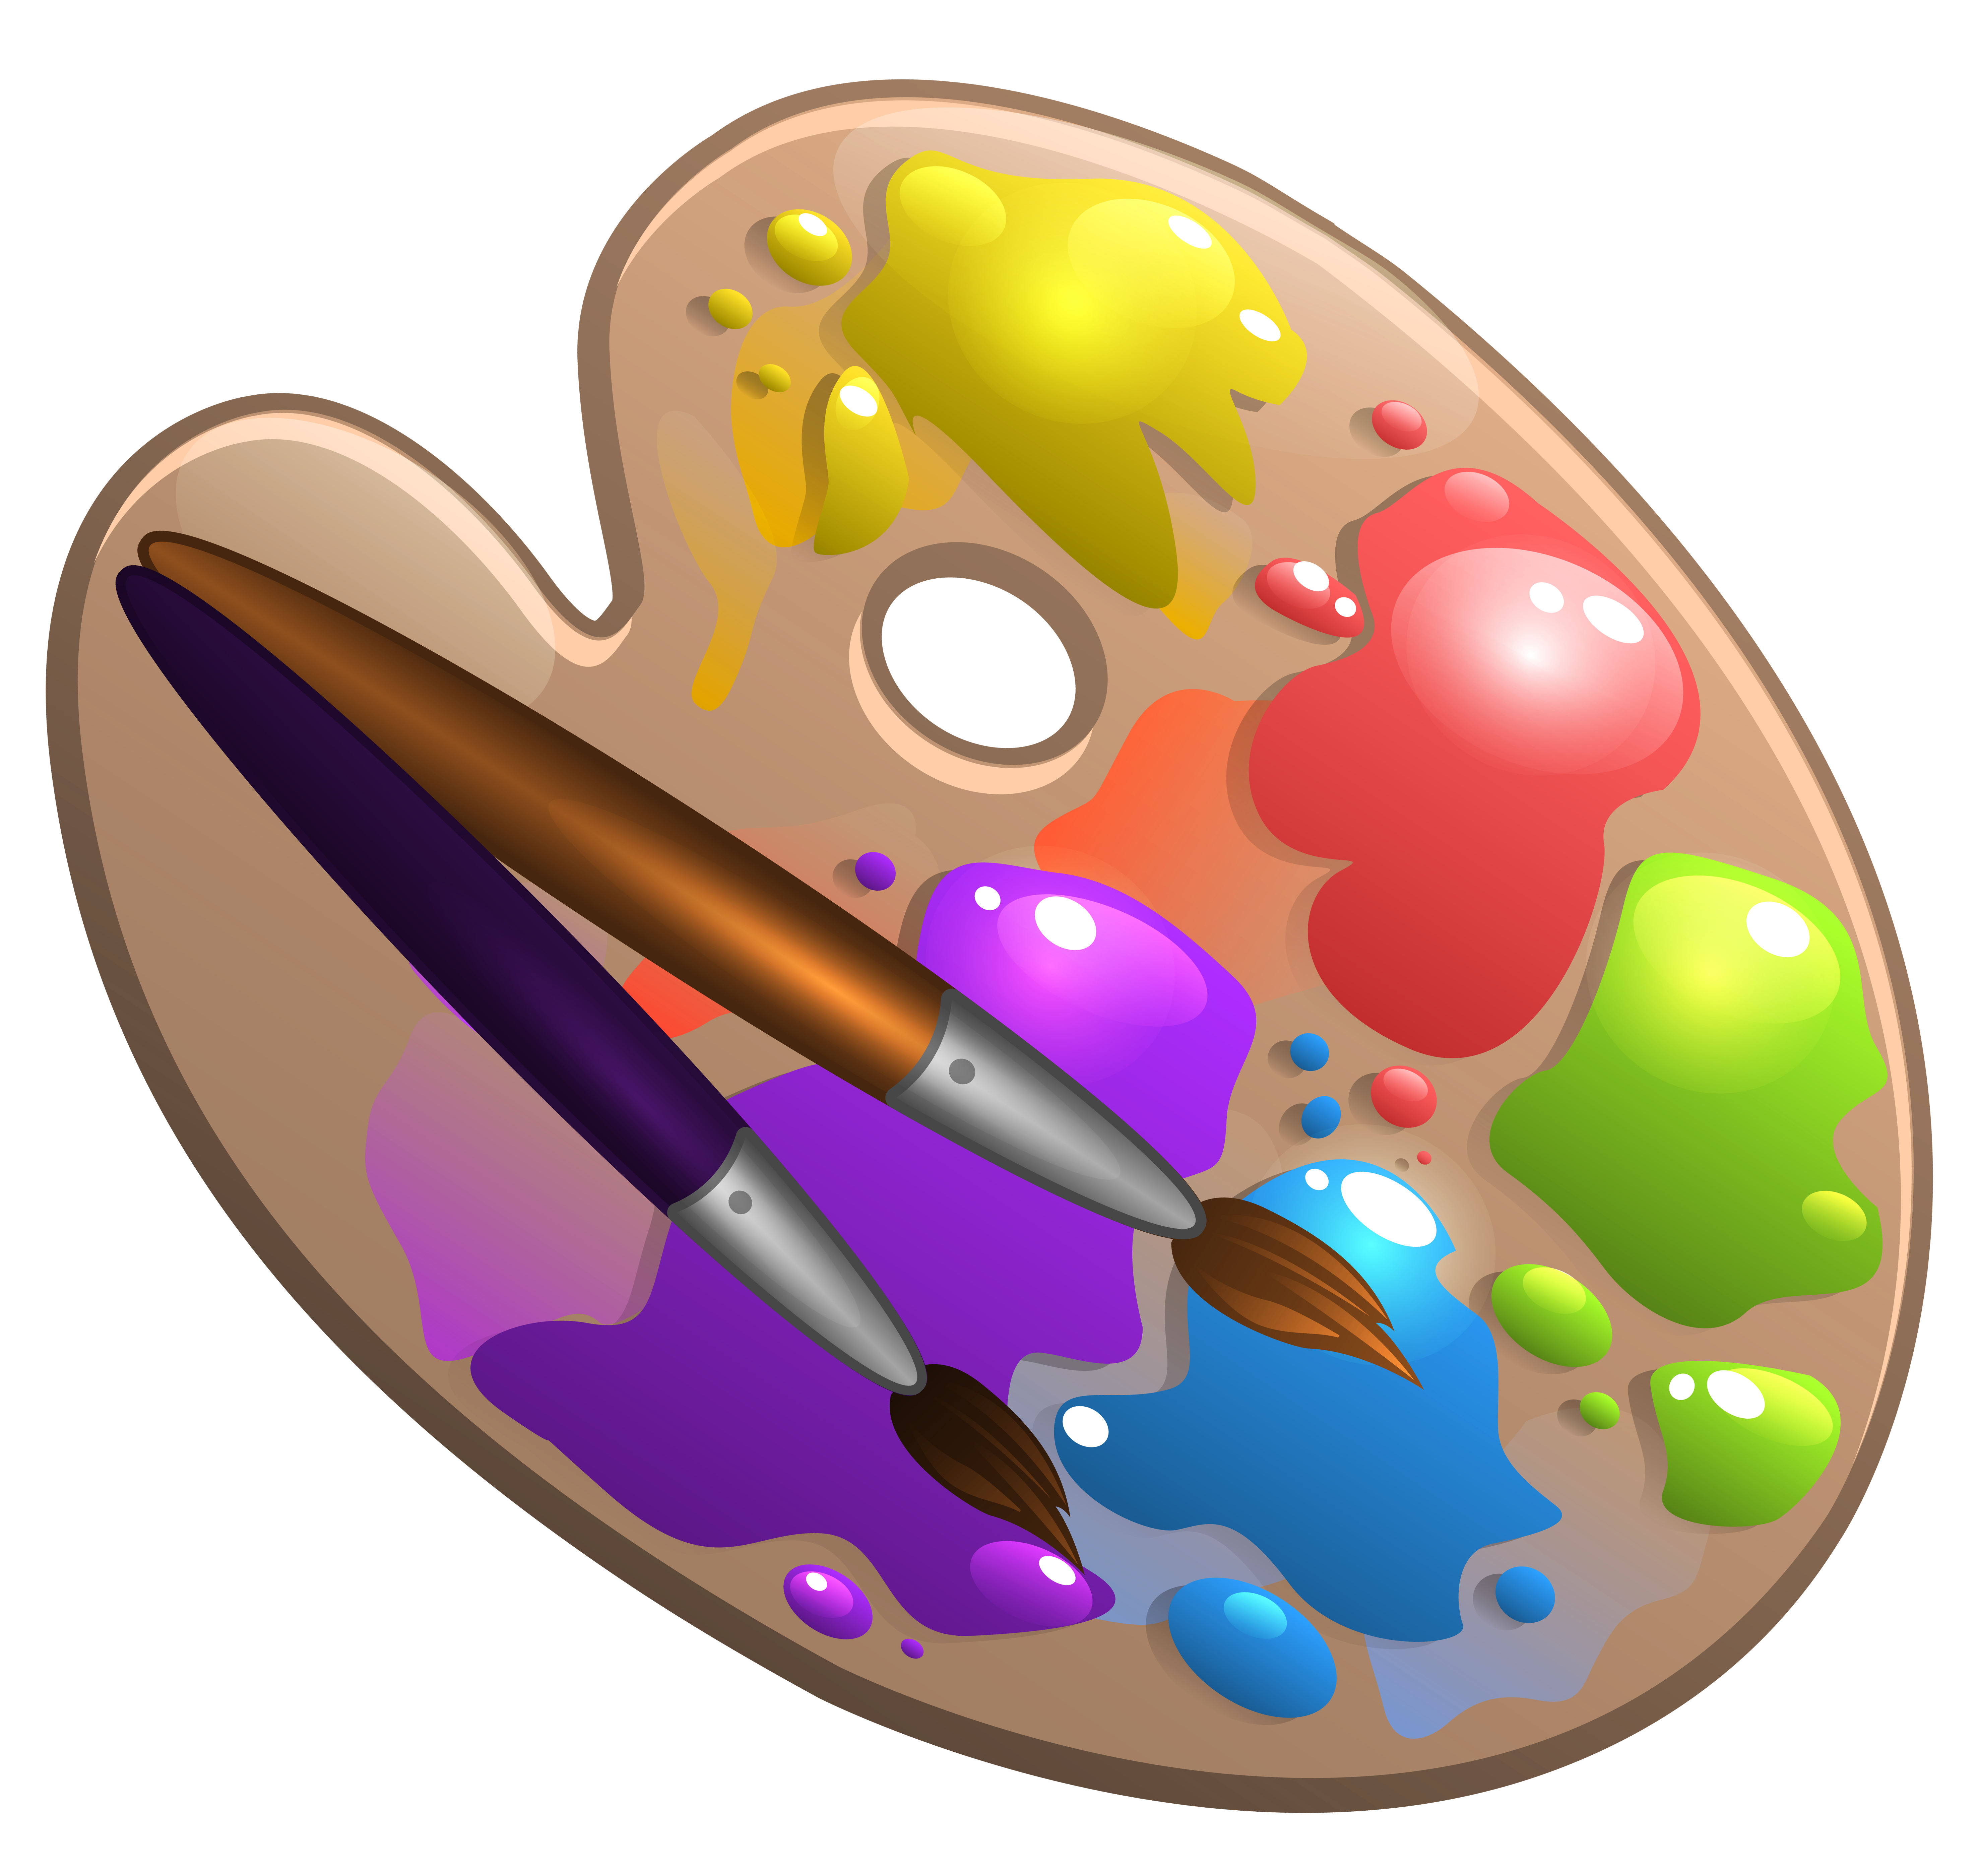 Paintbrush clipart small. School palette with paint